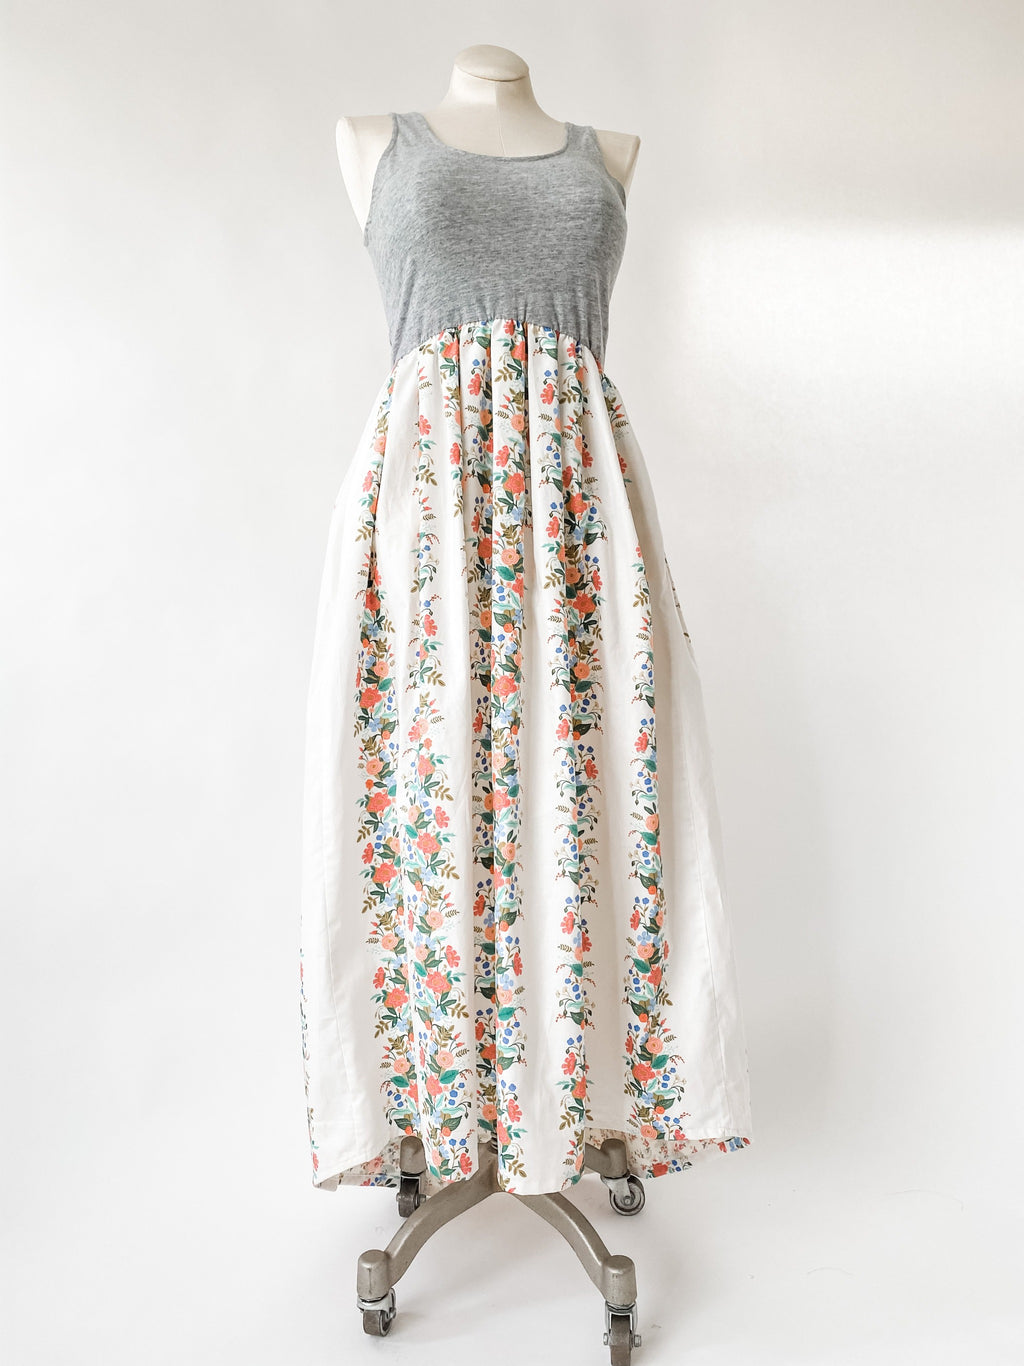 Together Dress in White English Garden with Train - made with Rifle Paper Co Fabric